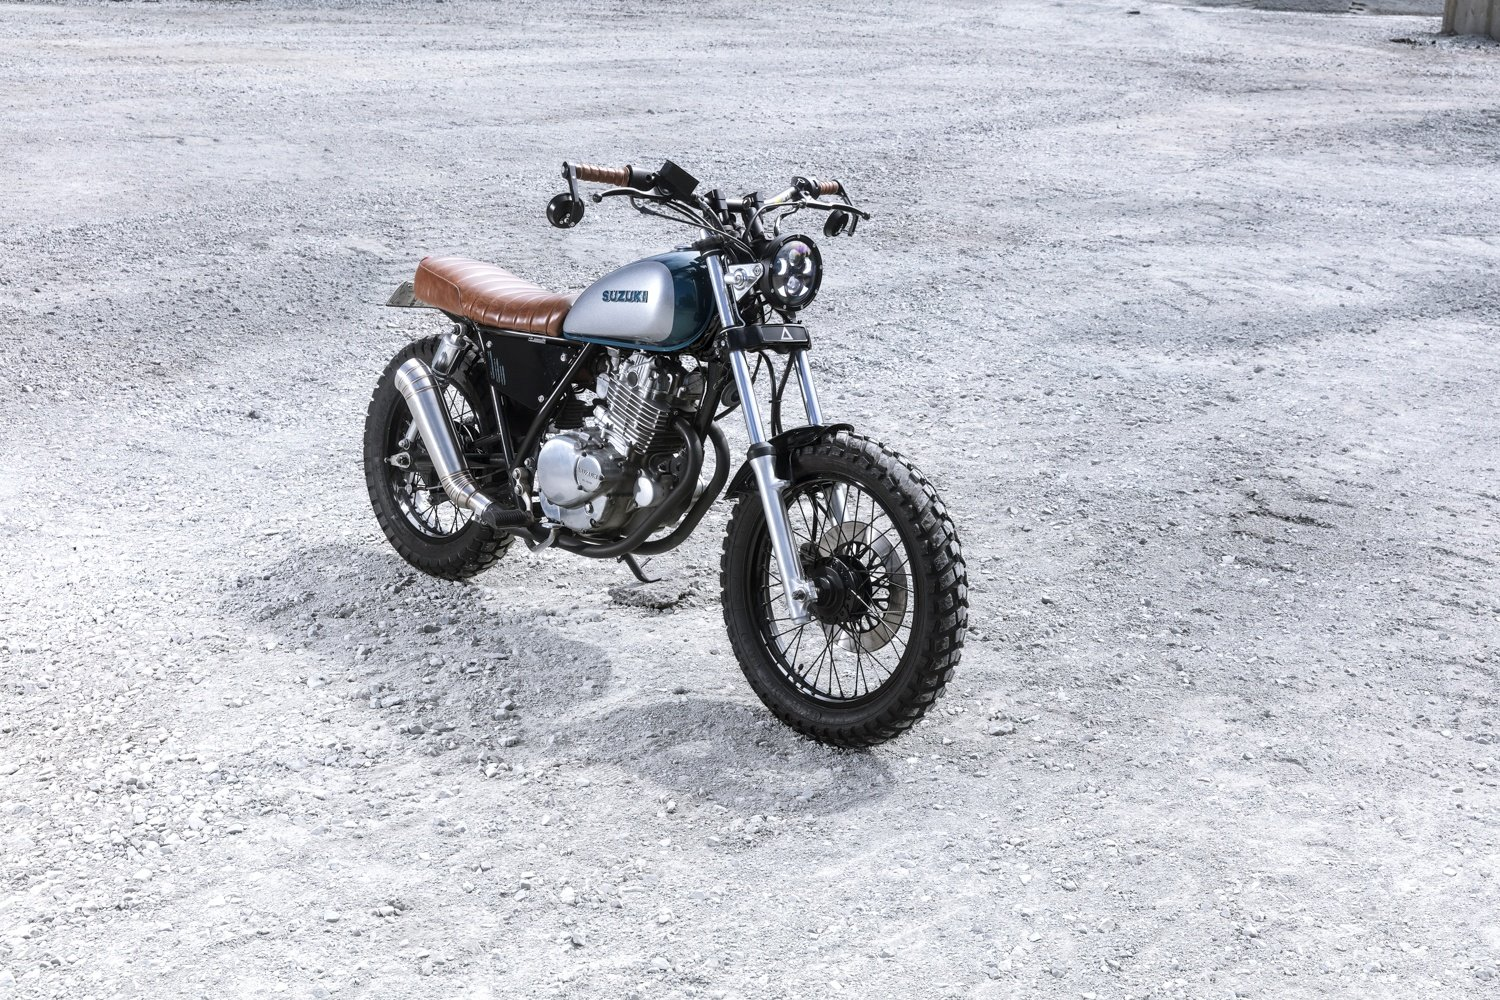 How to Build a Scrambler - A Guide on What it Takes to Build